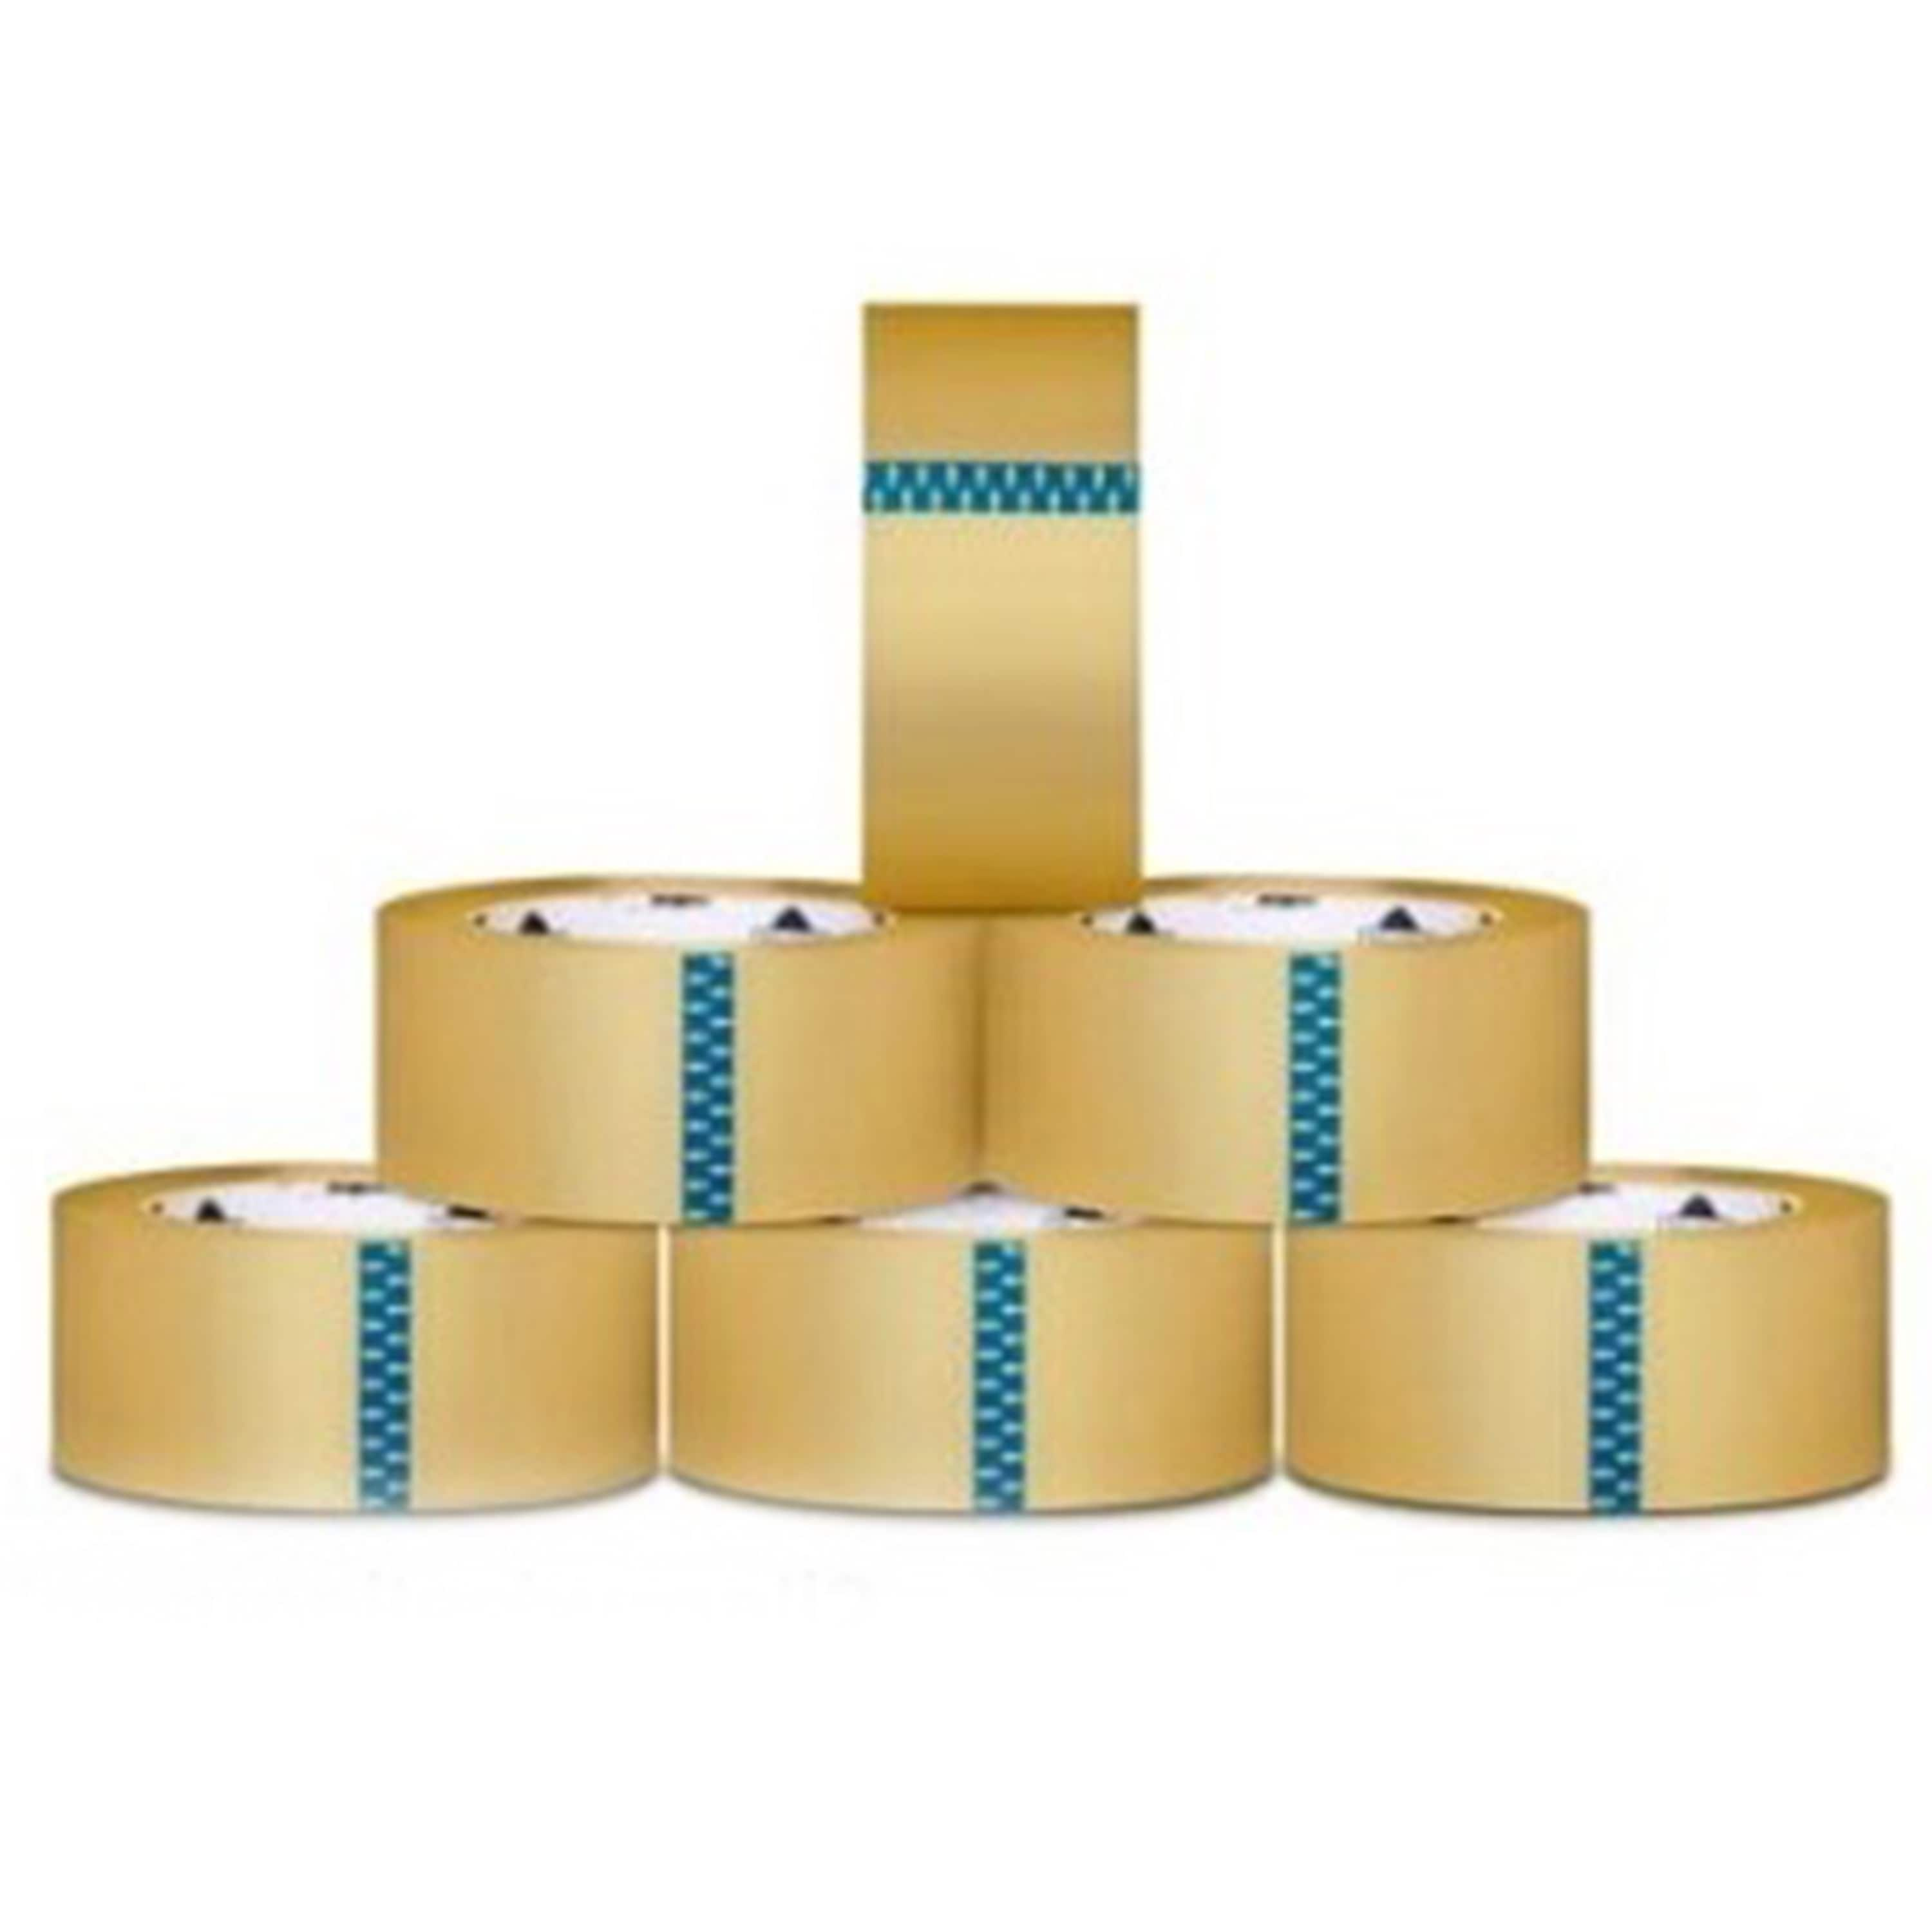 Packagingsuppliesbymail 3240 Rolls Carton Sealing Clear Packing / Shipping / Box Tapes 1.6 Mil 2 Inch x 110 yards